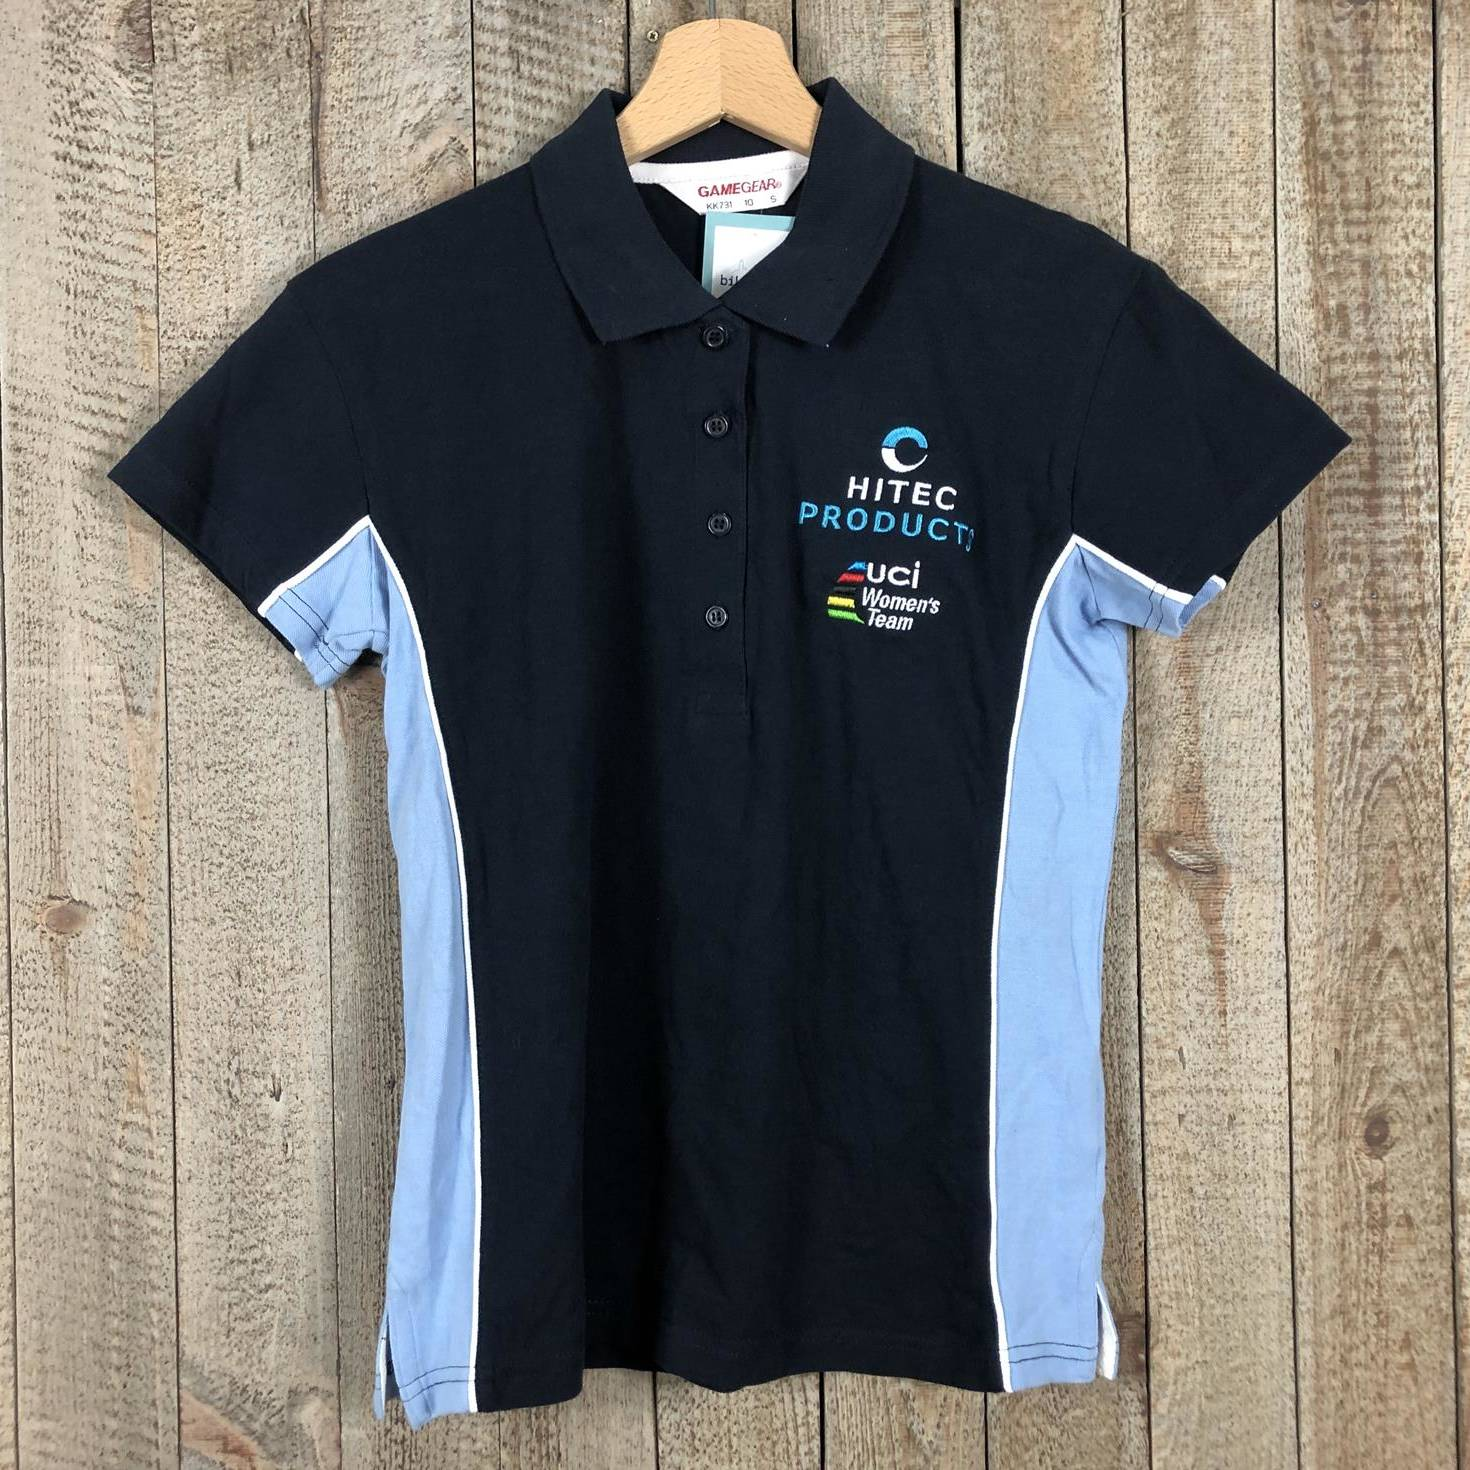 Polo Shirt - Hitec Products 00003005 (1)